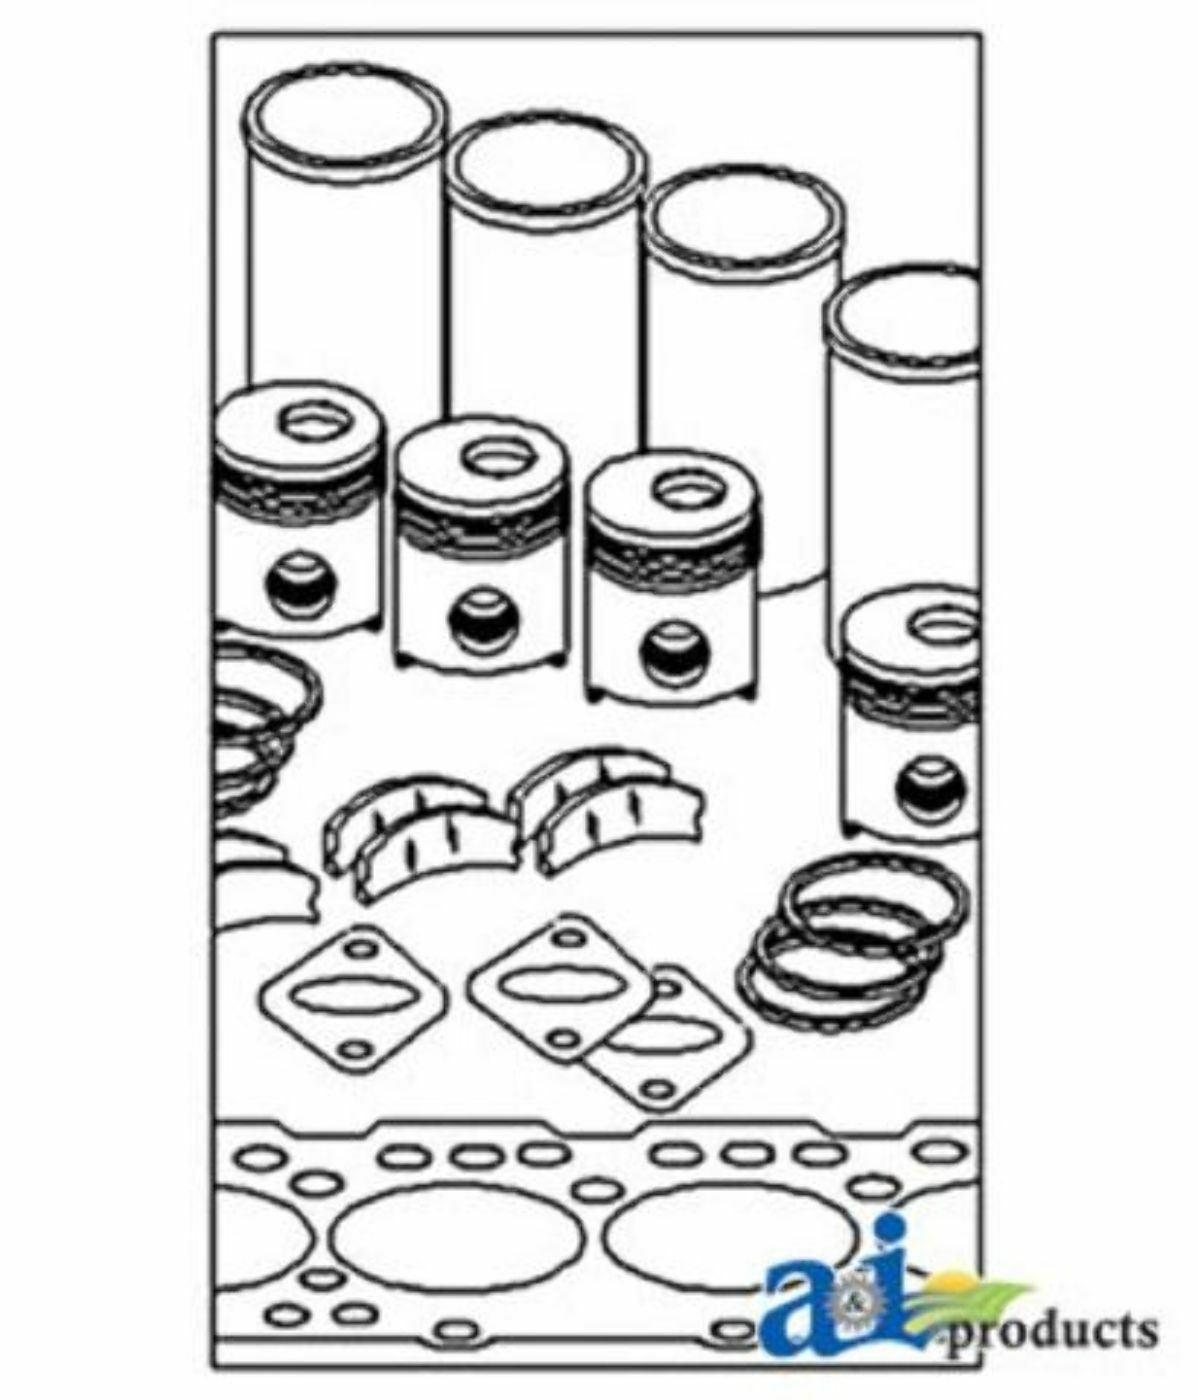 ikf6l912a in frame overhaul kit fits deutz tractor dx6 05 dx 6 10 ebay Ford 3000 Fuel Filter Assembly norton secured powered by verisign